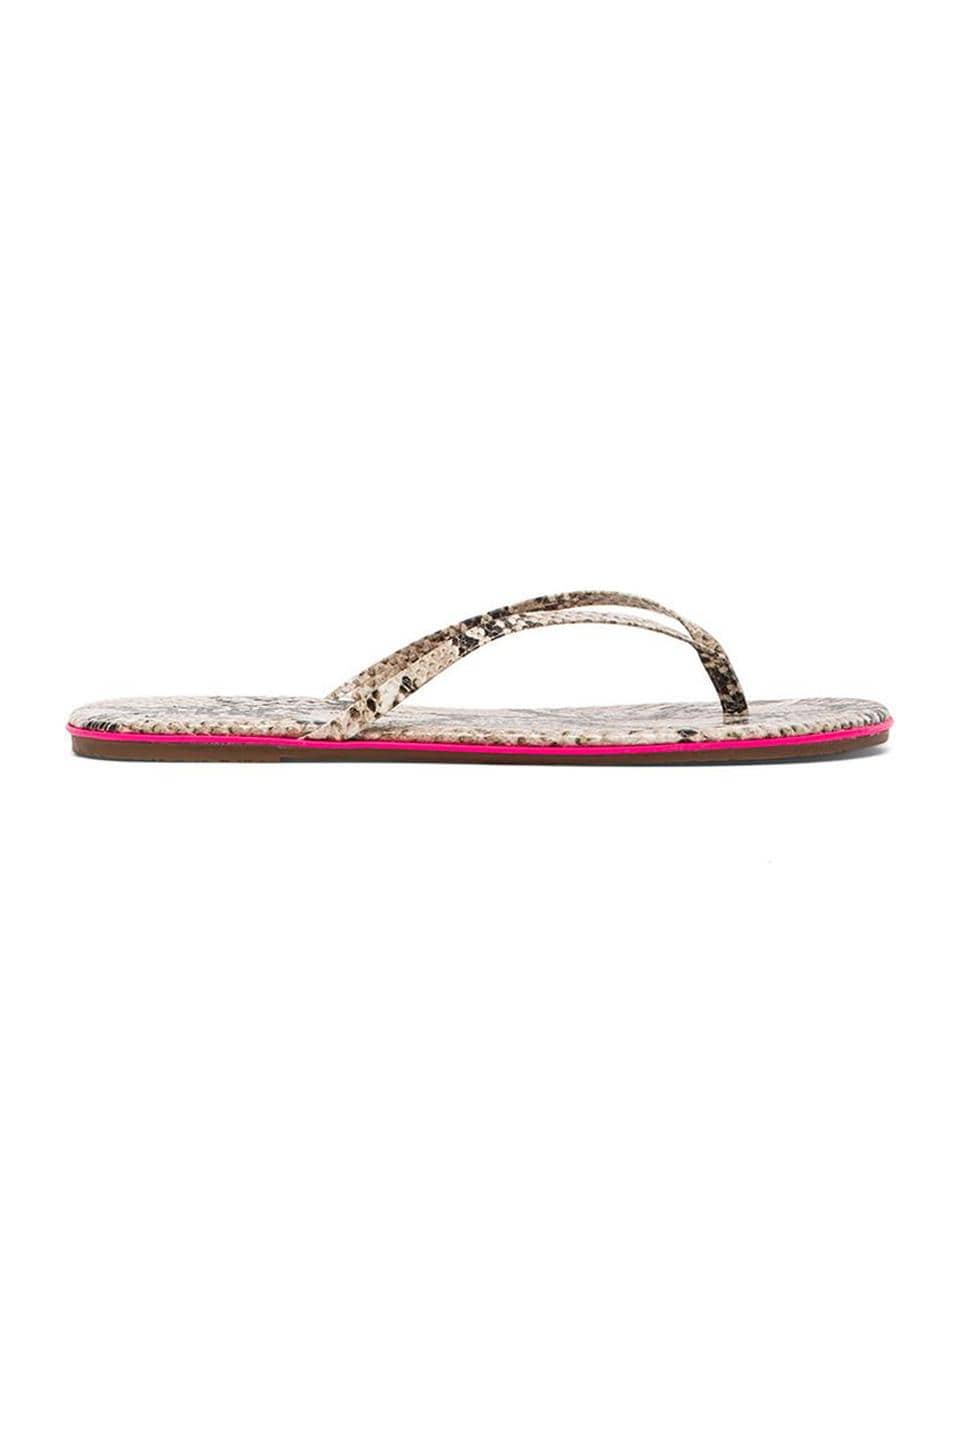 TKEES Sandal in Pink Venom